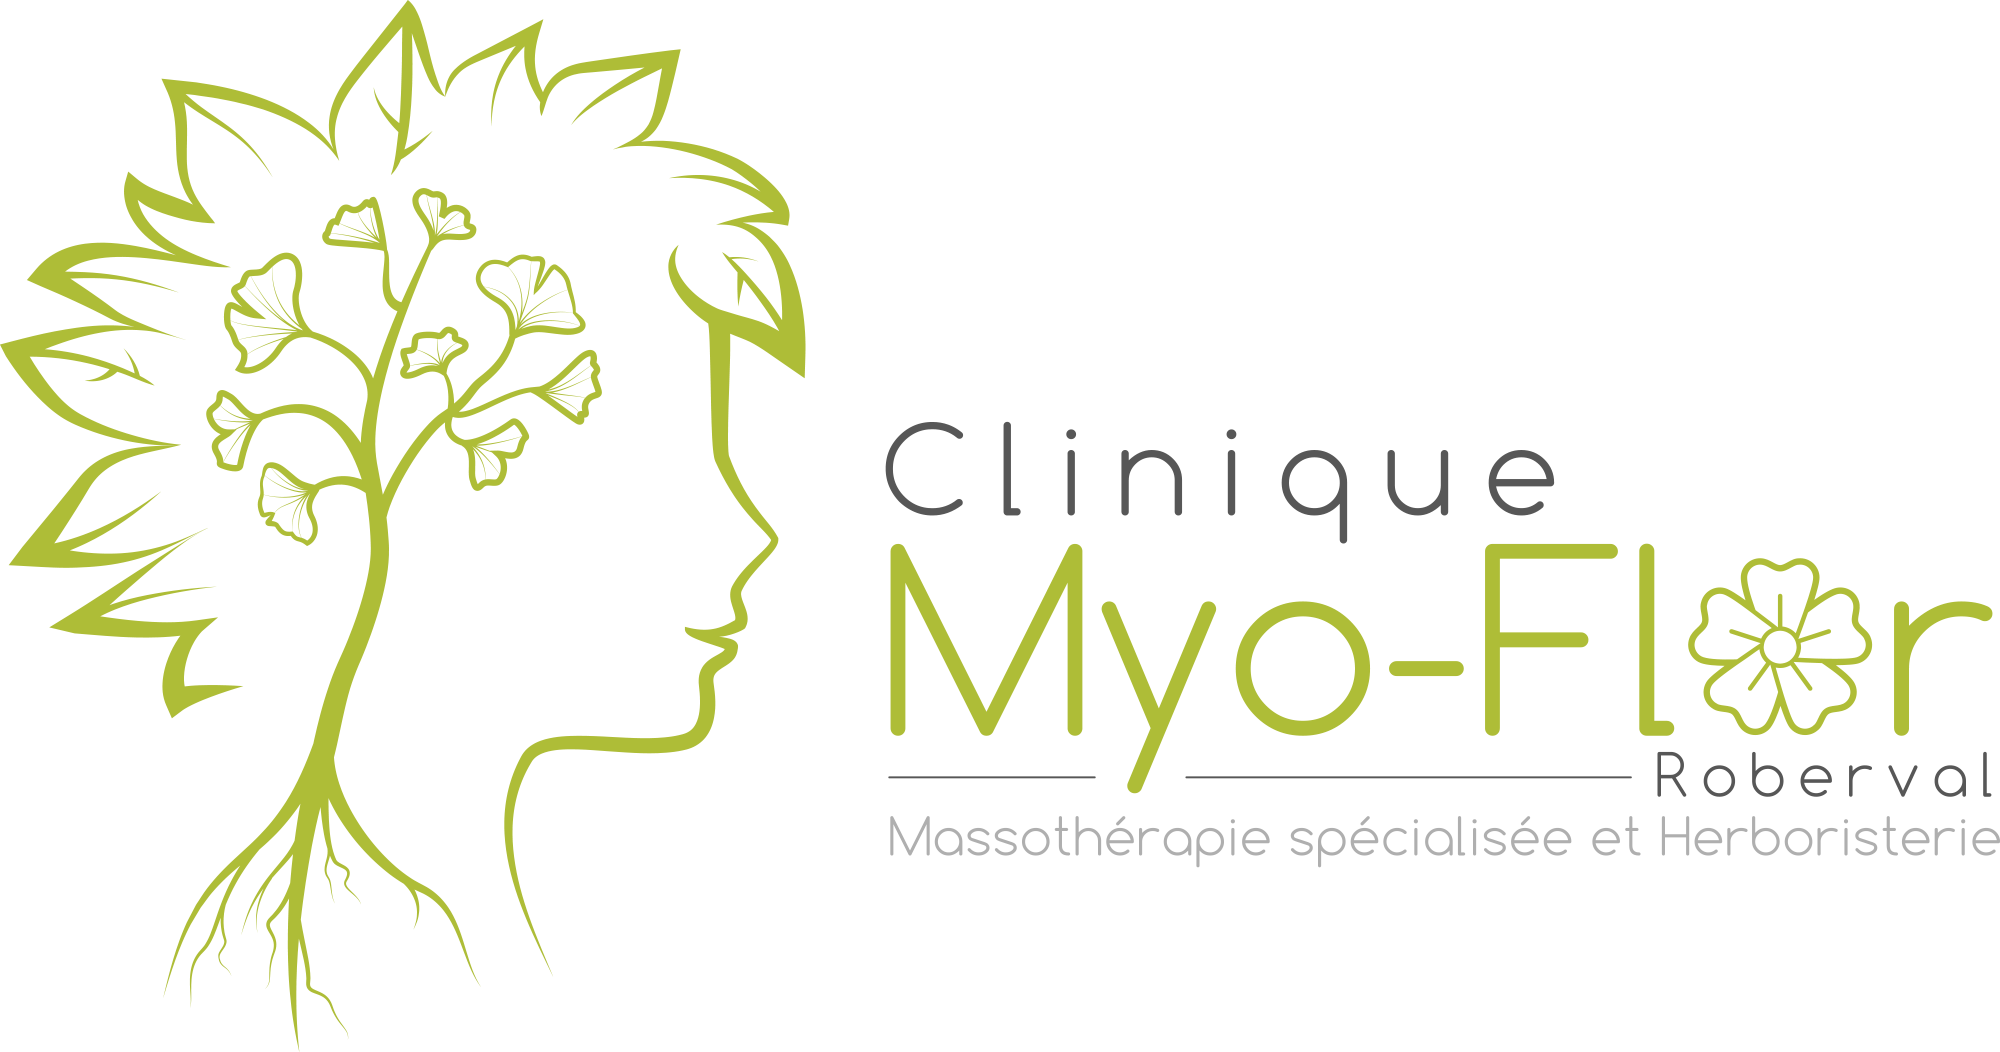 Clinique Myo-Flor, Roberval